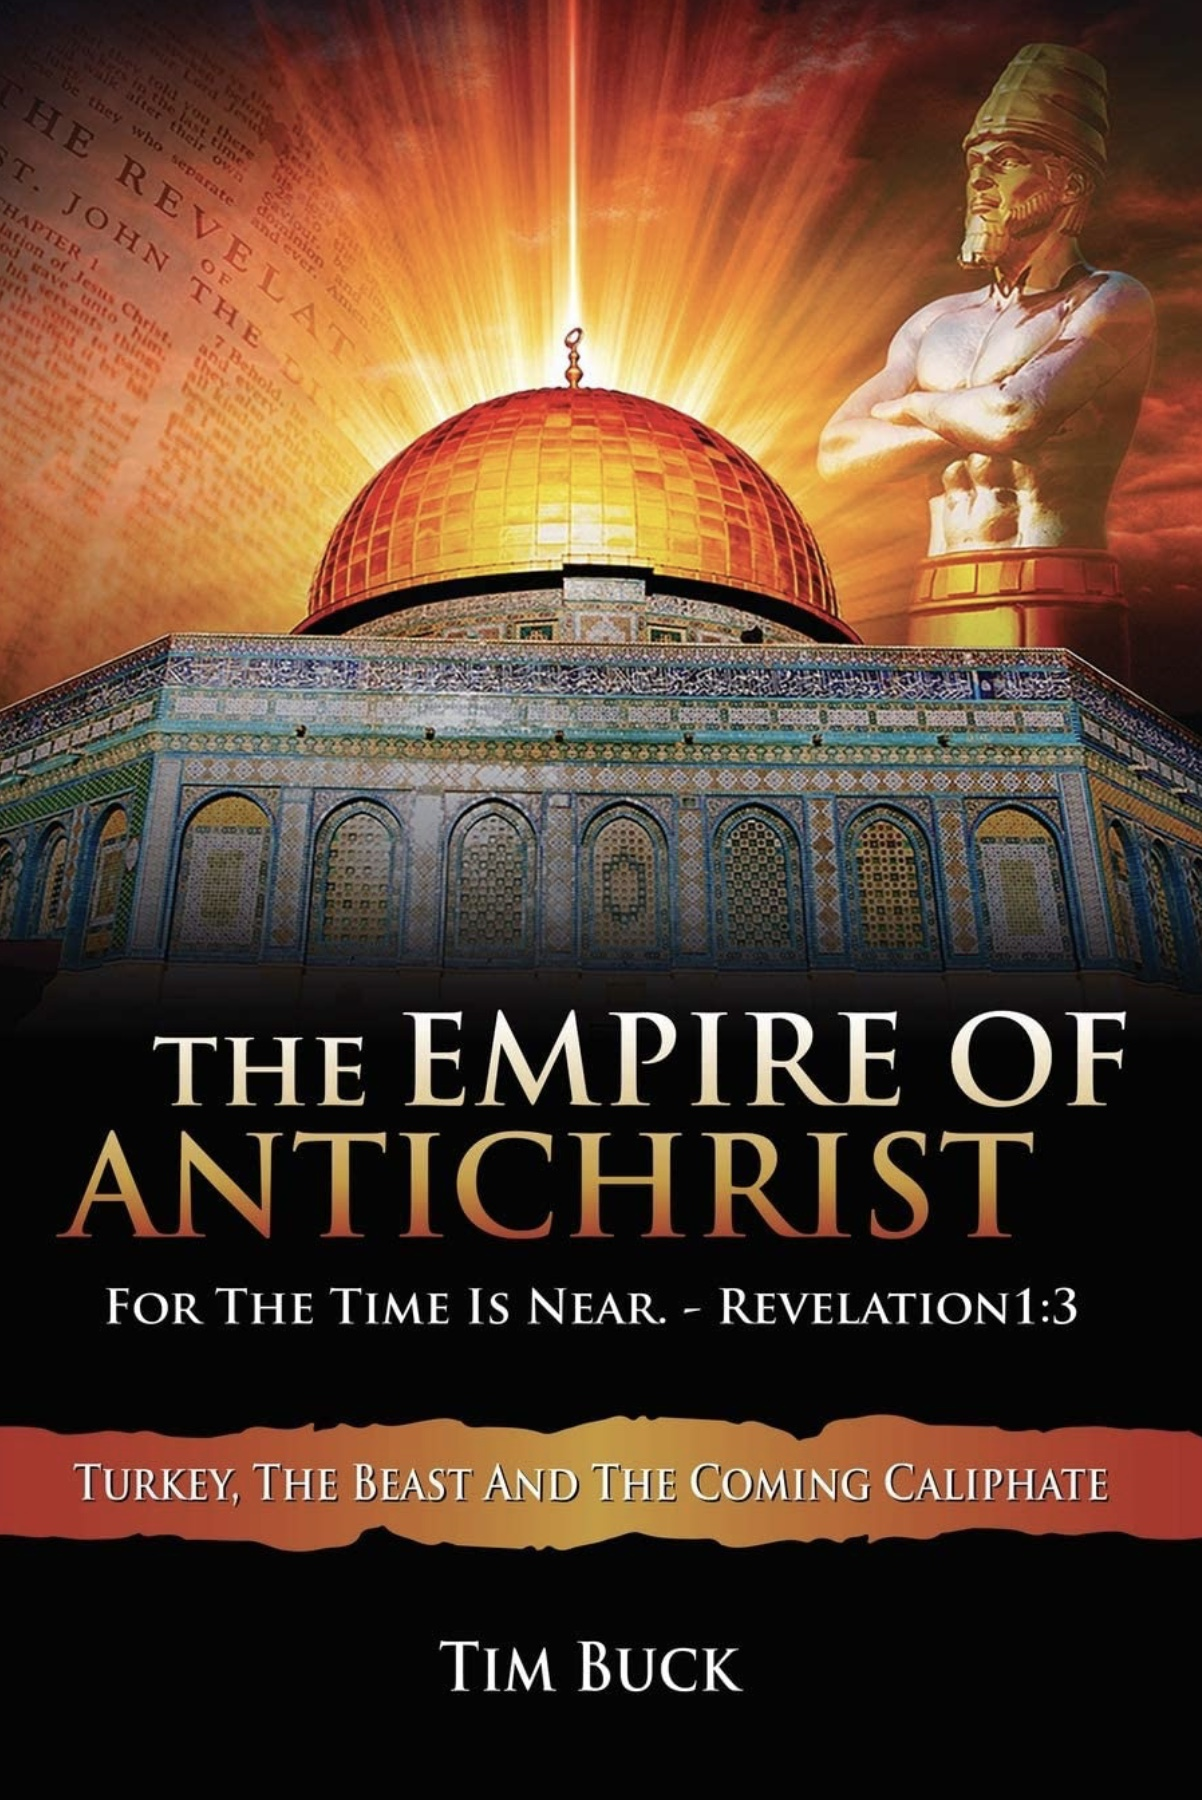 The Empire of the Antichrist Focus on the End Times Ministry